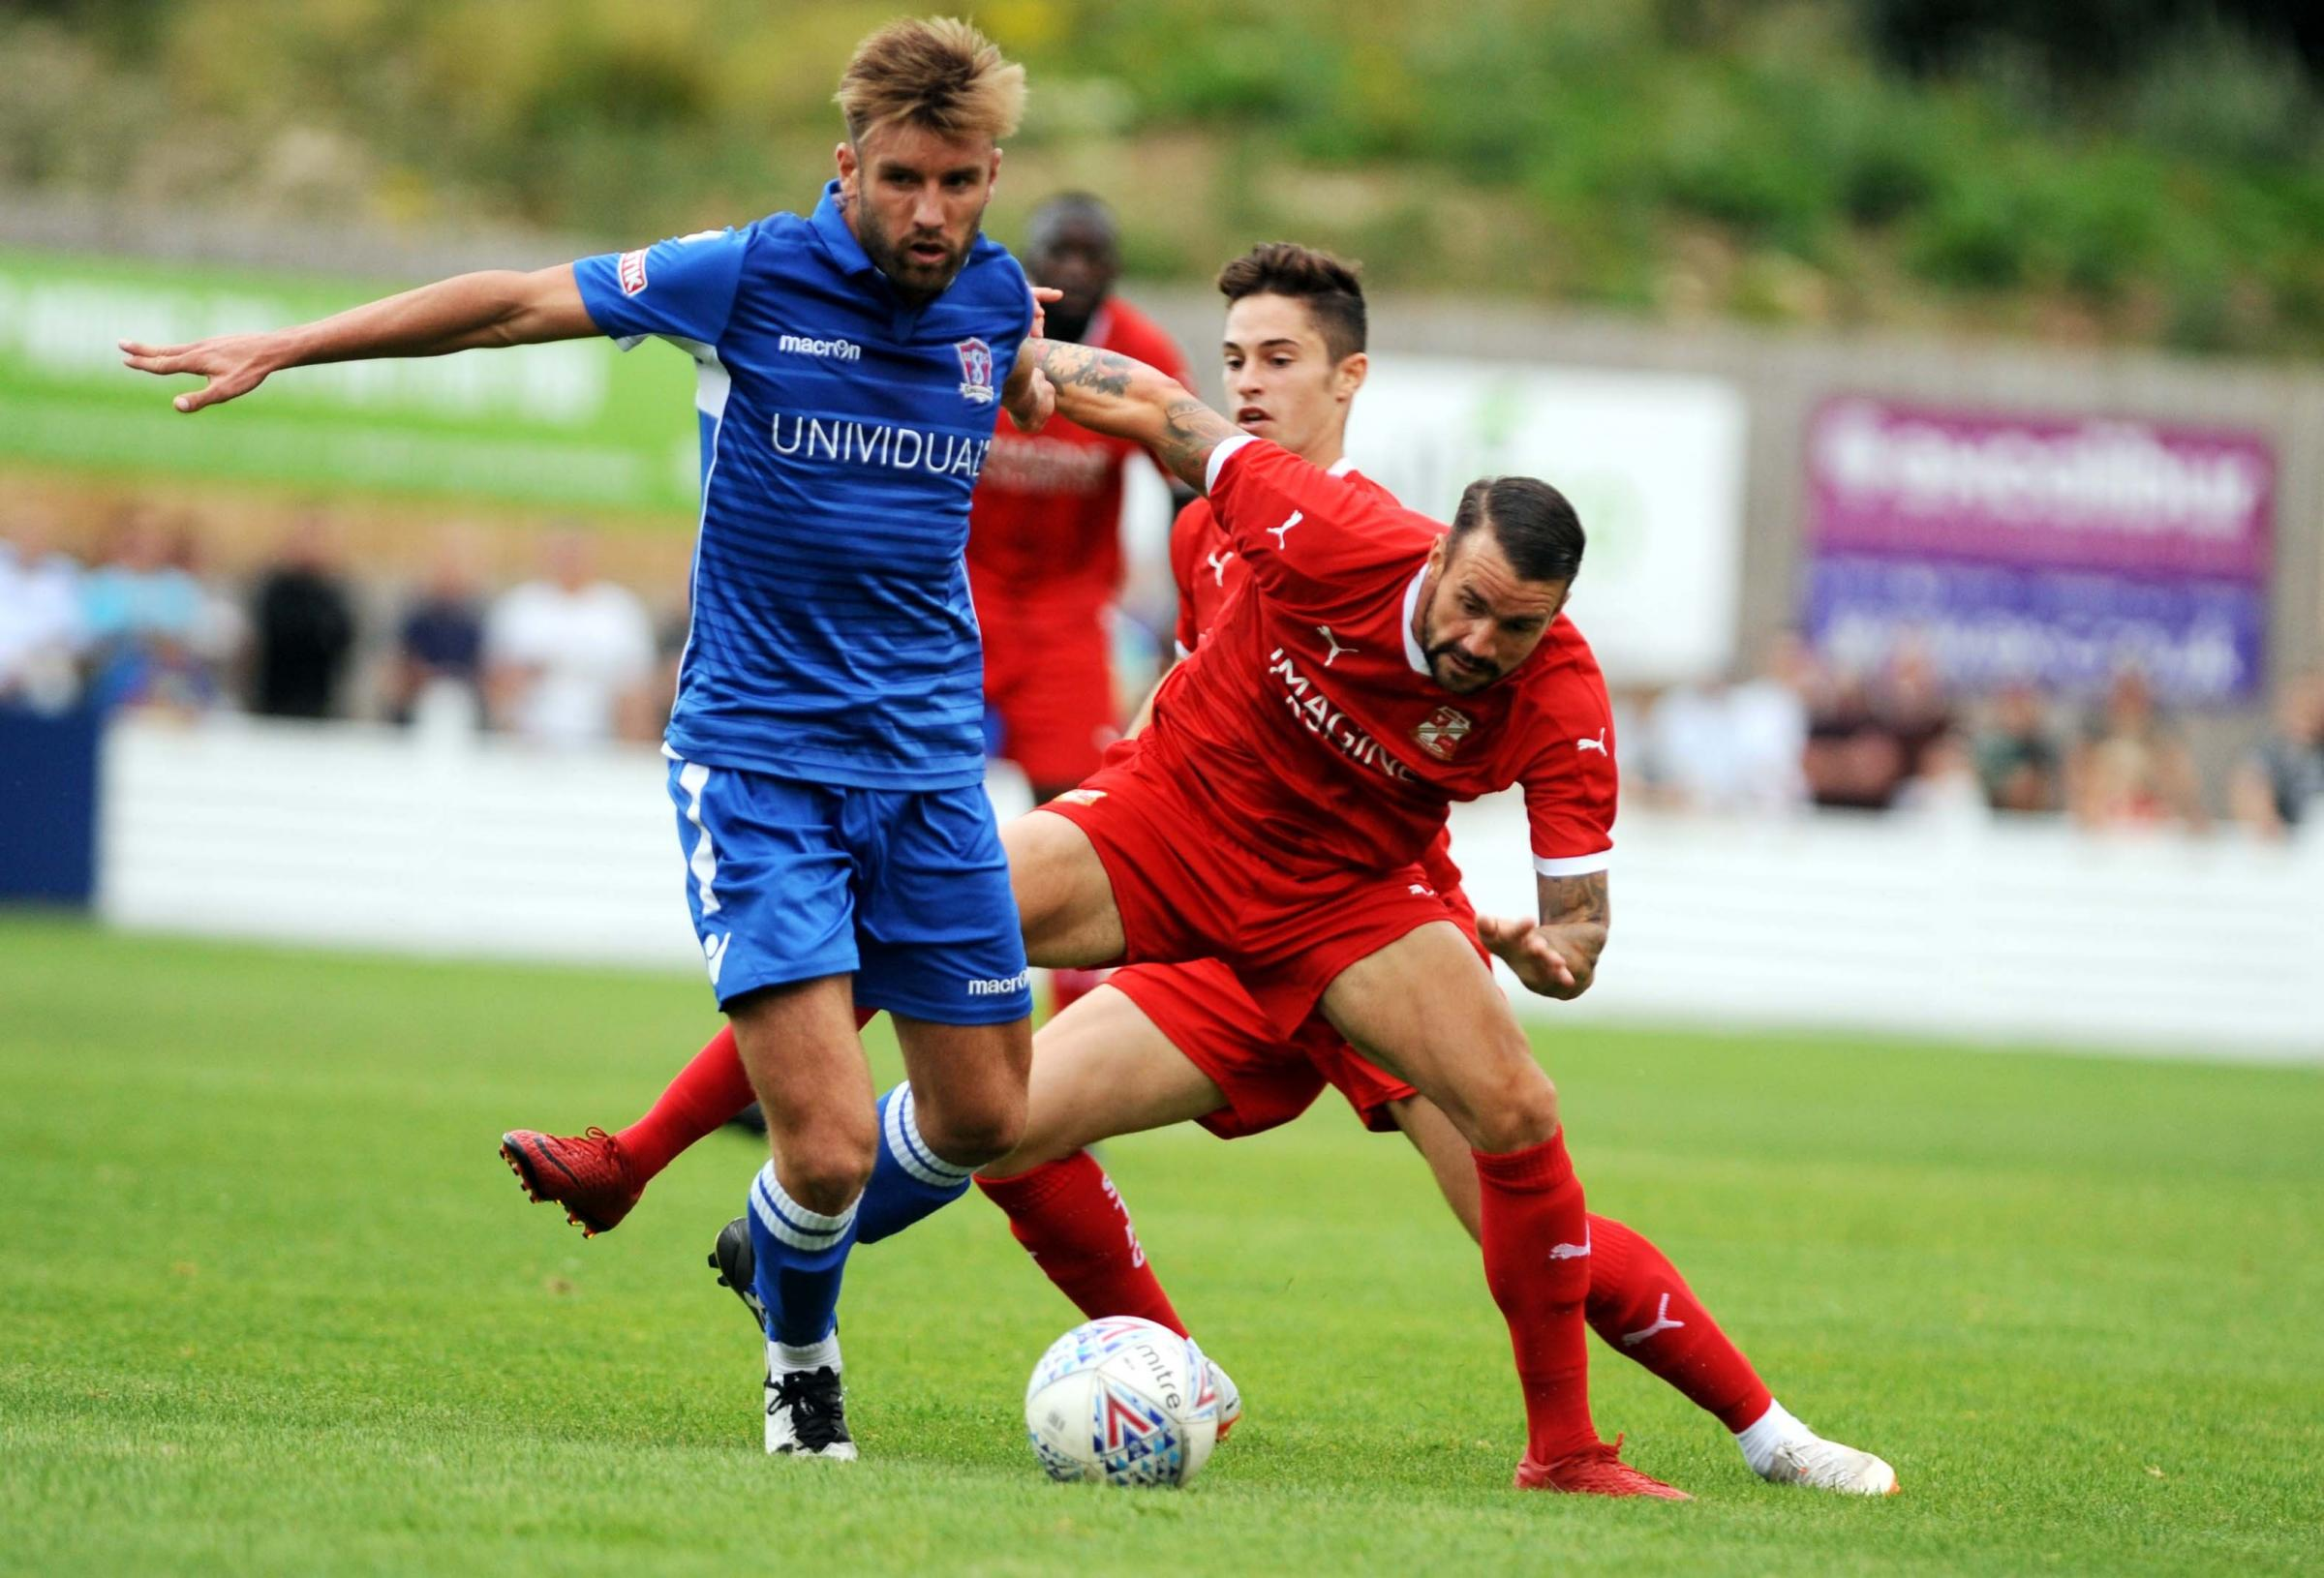 Town's James Dunne in action during Town's summer friendly against Swindon Supermarine